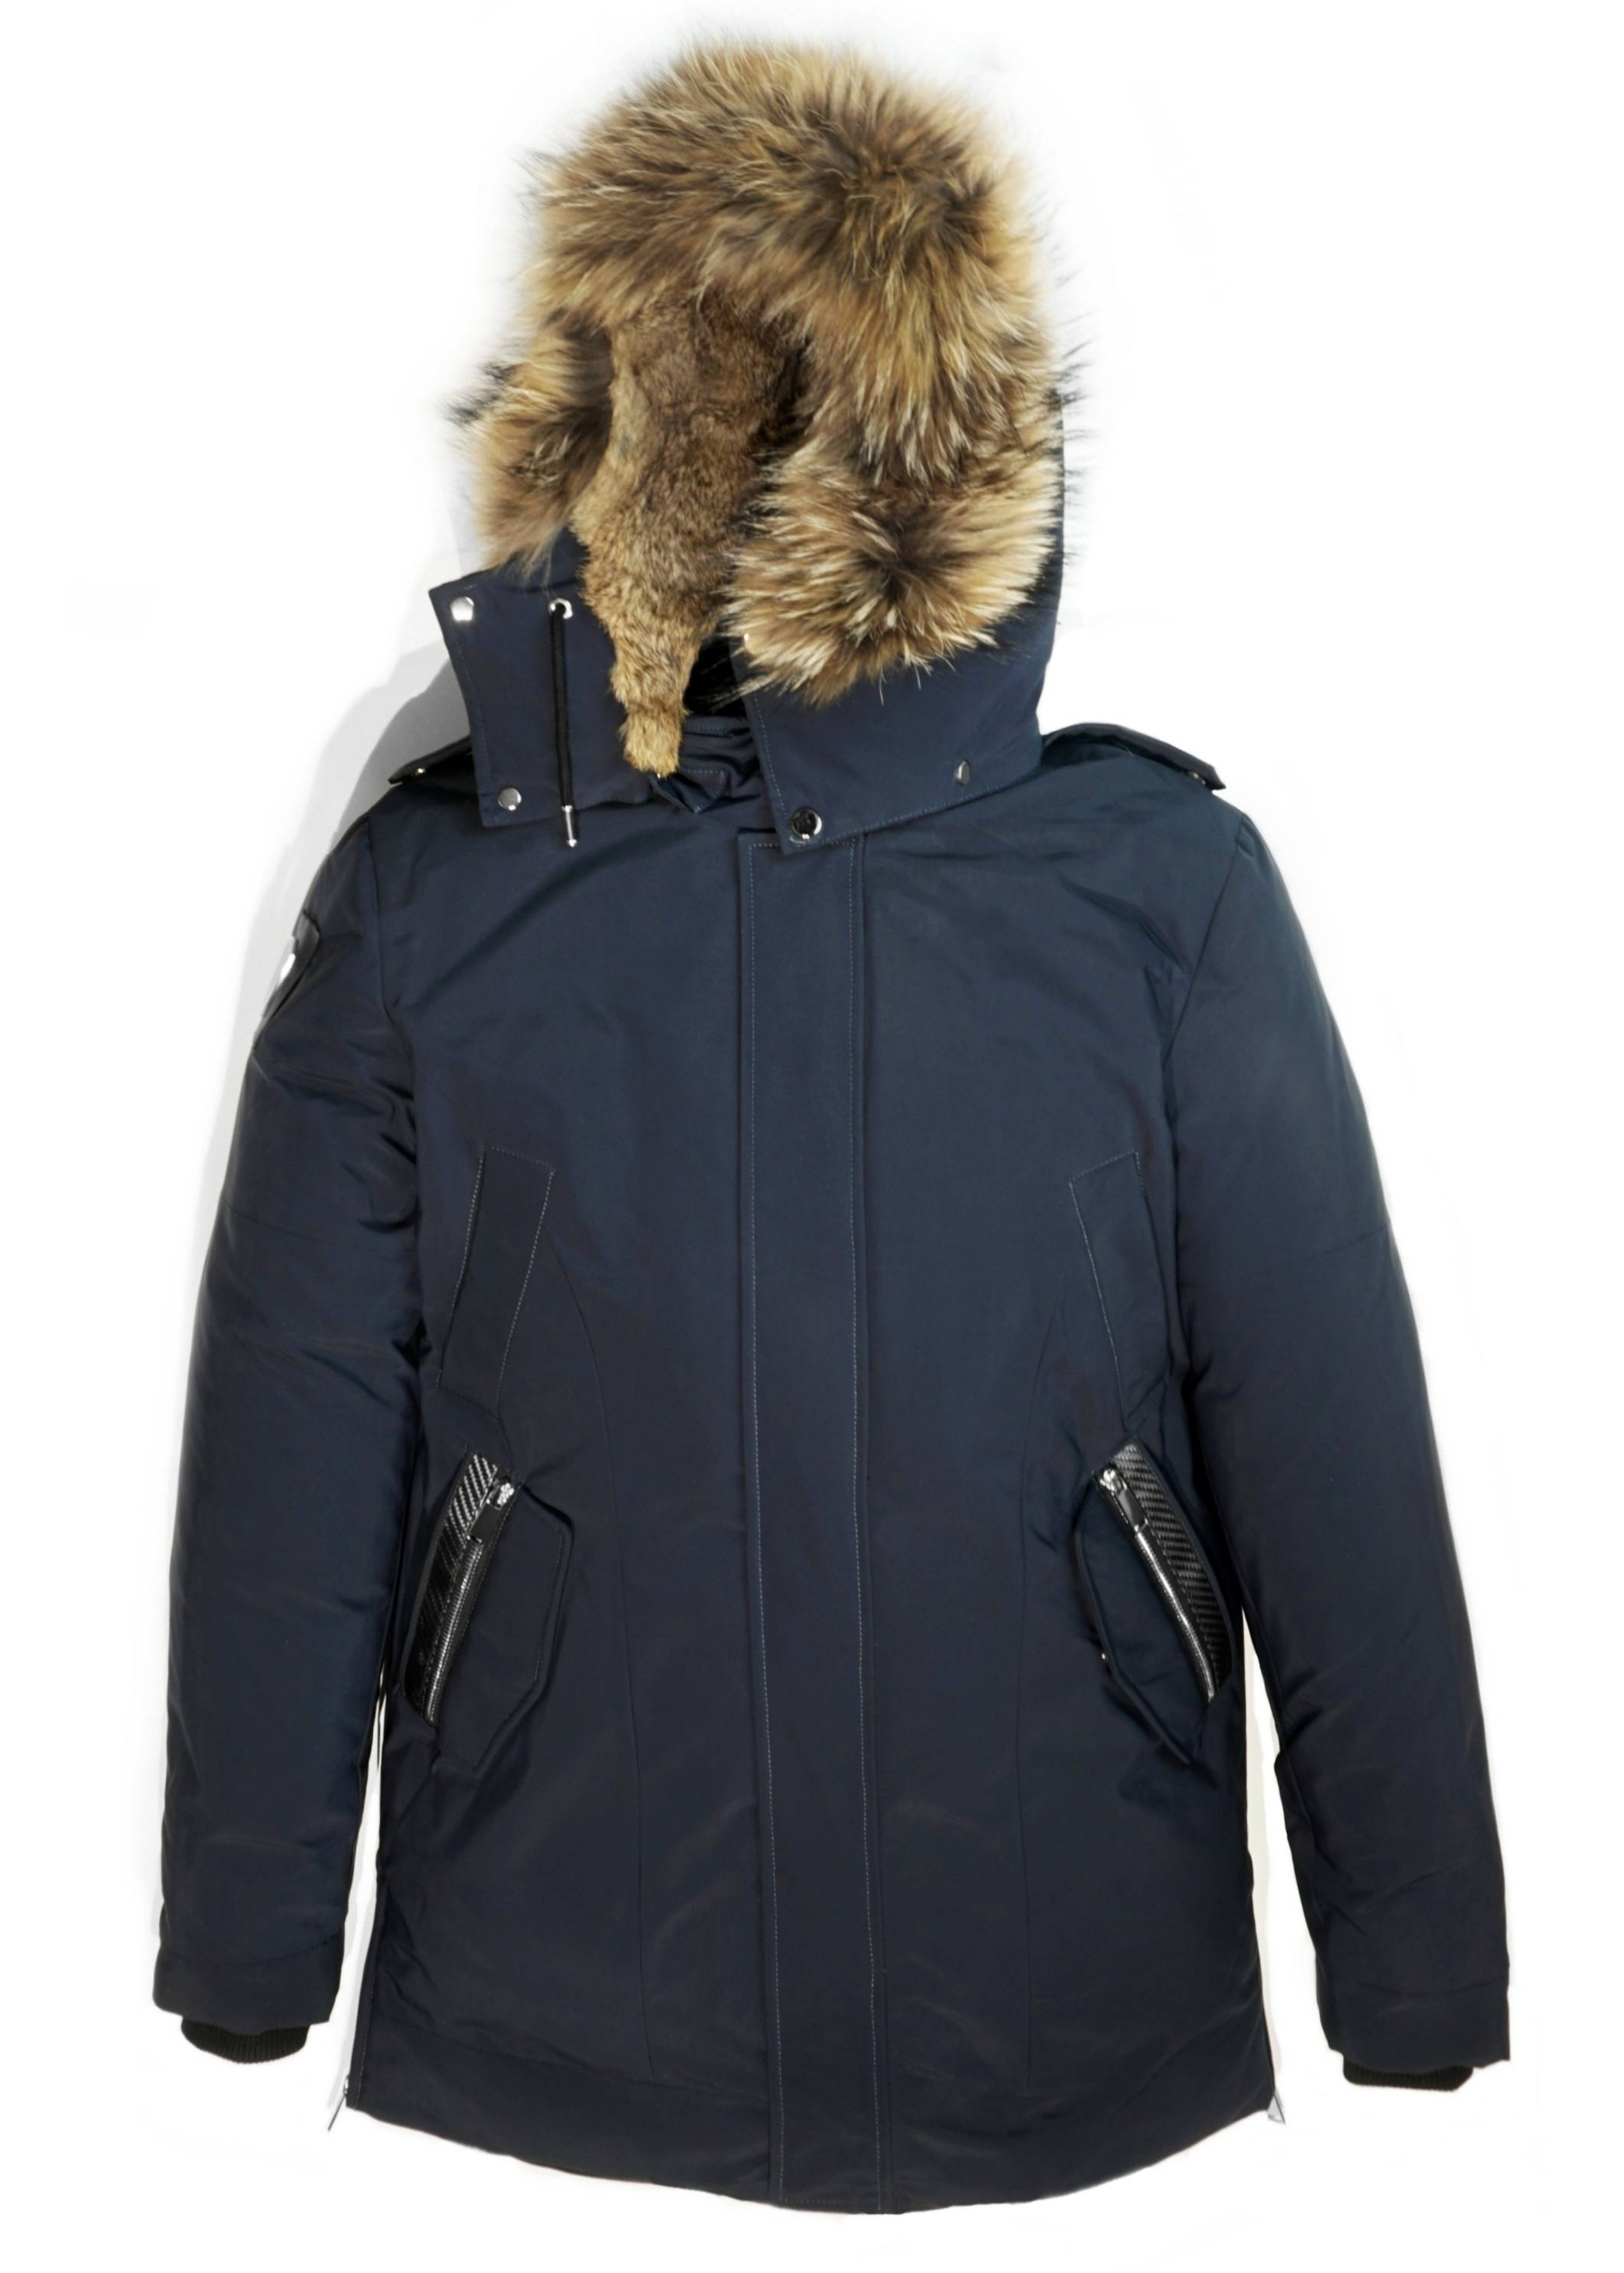 Carbonesque mens Scandinavia parka